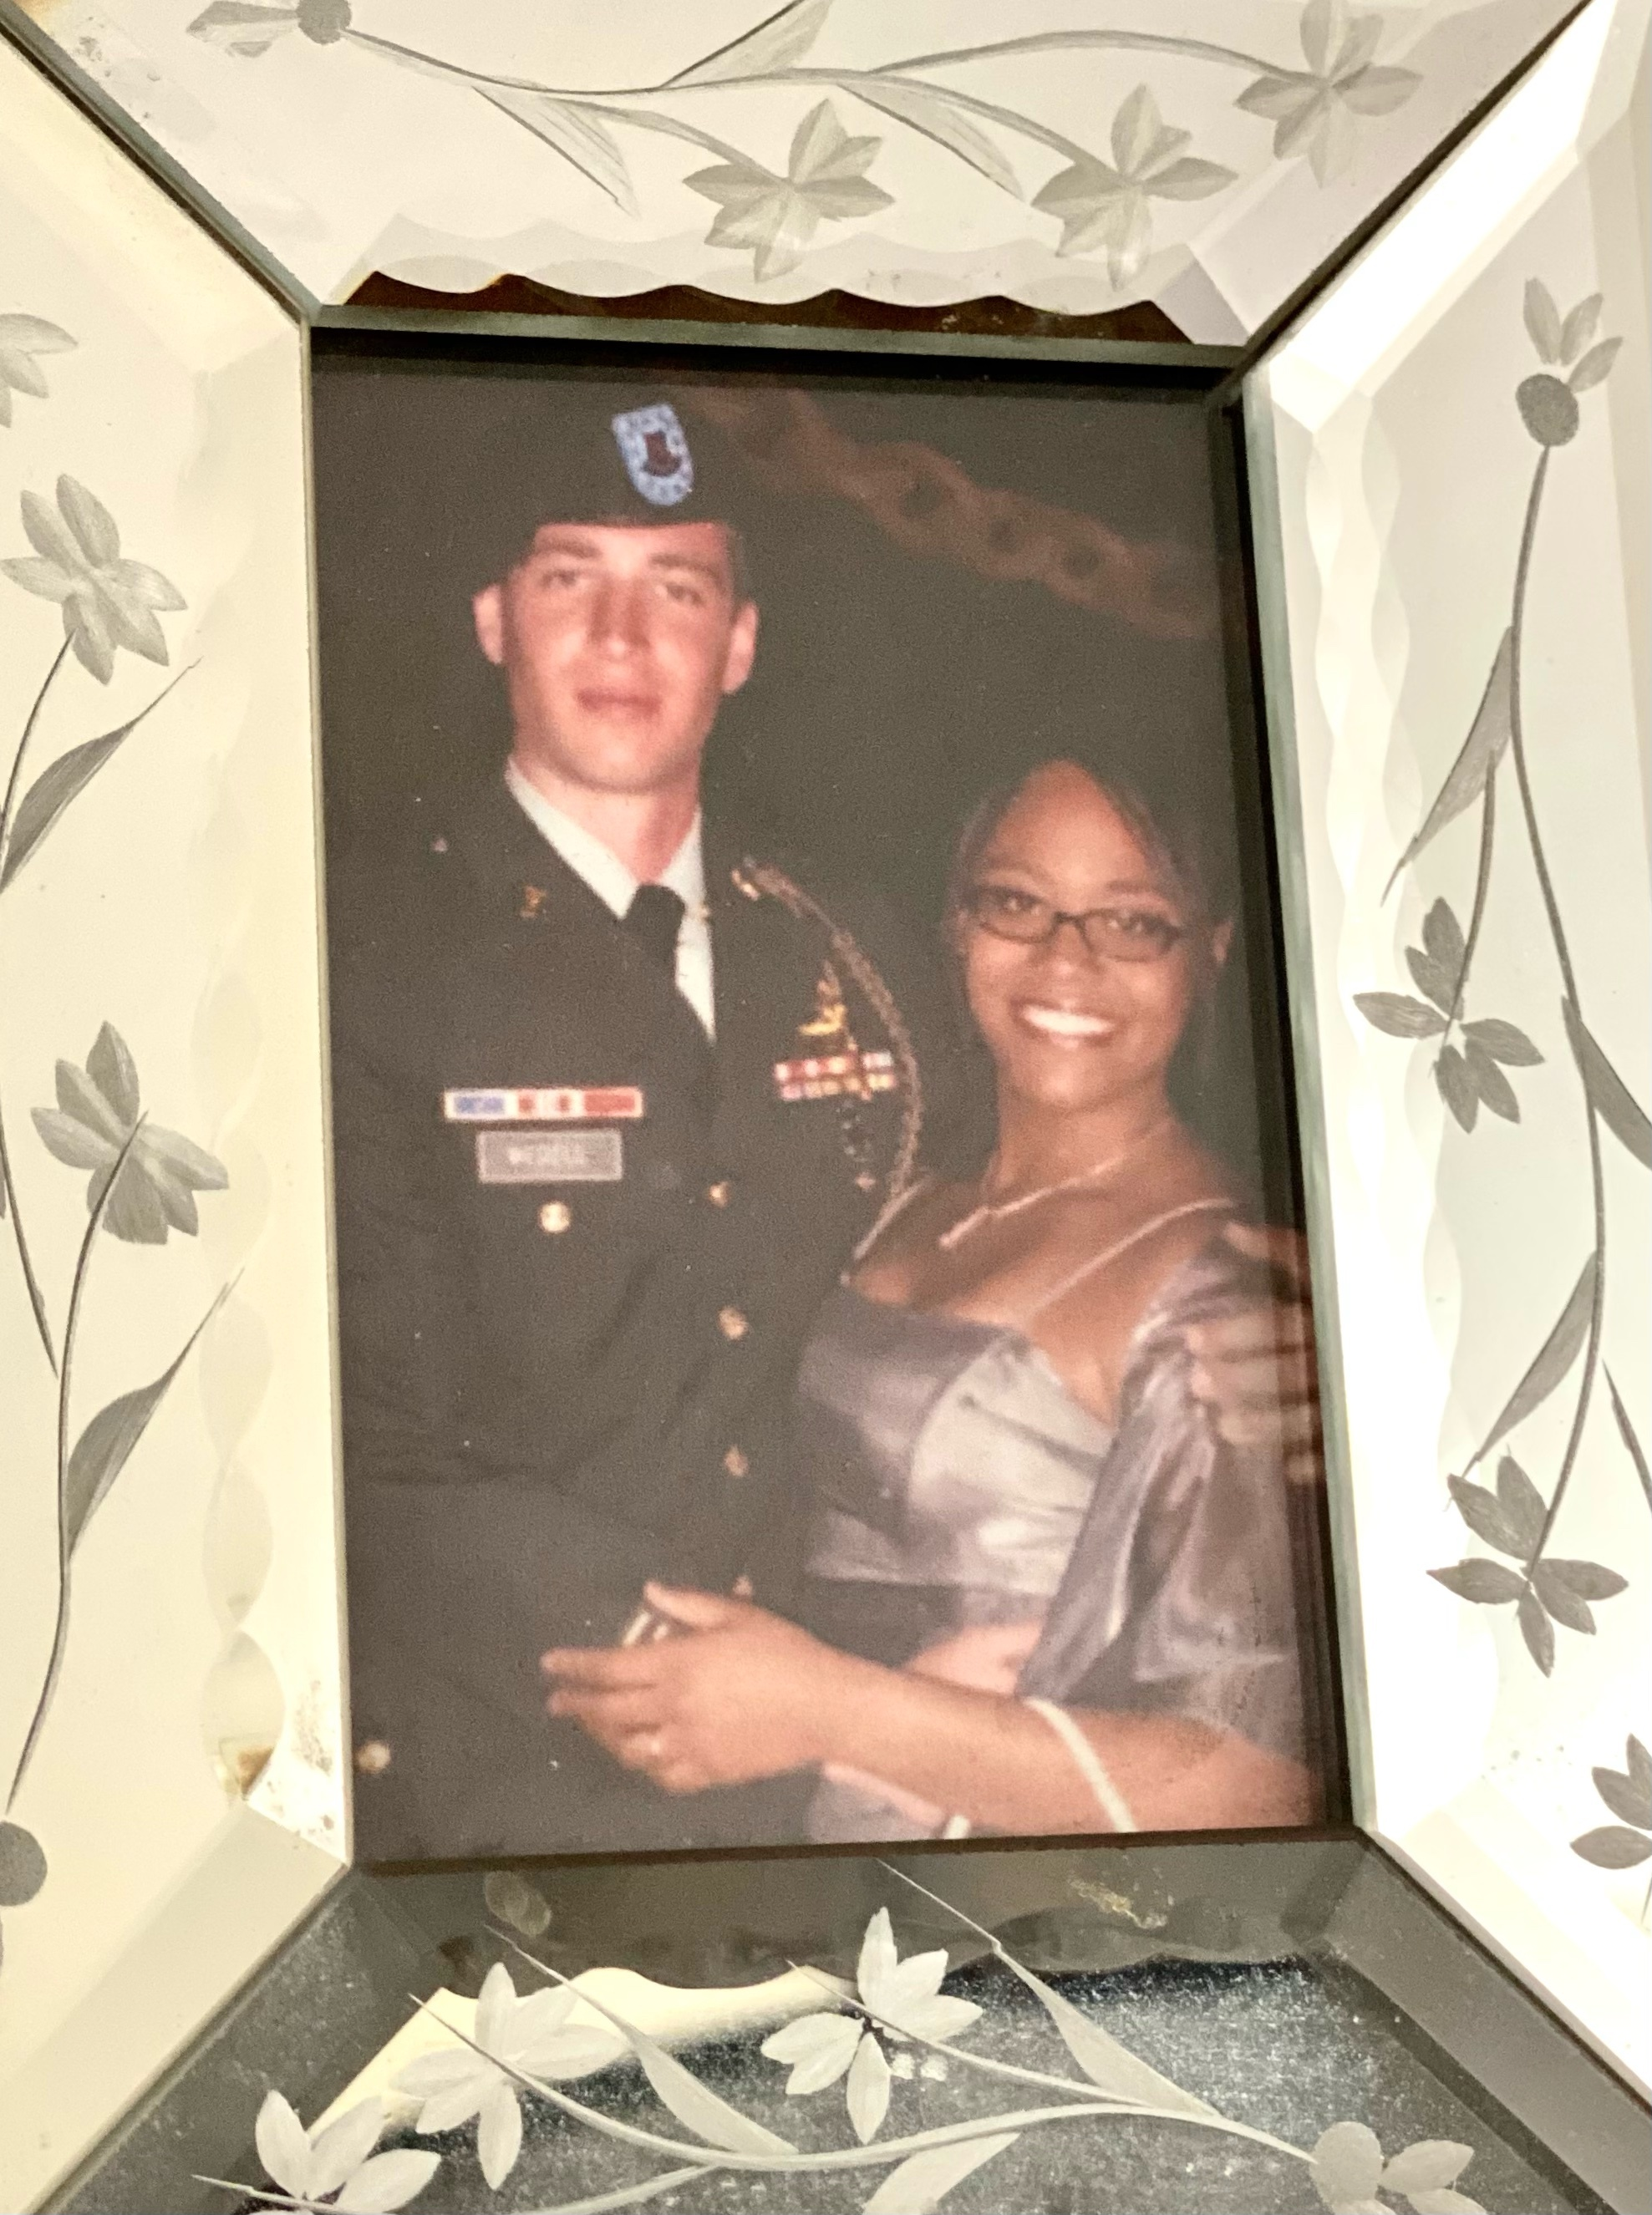 Photo of Angelica & Mark Wedell. Mark is an Army veteran